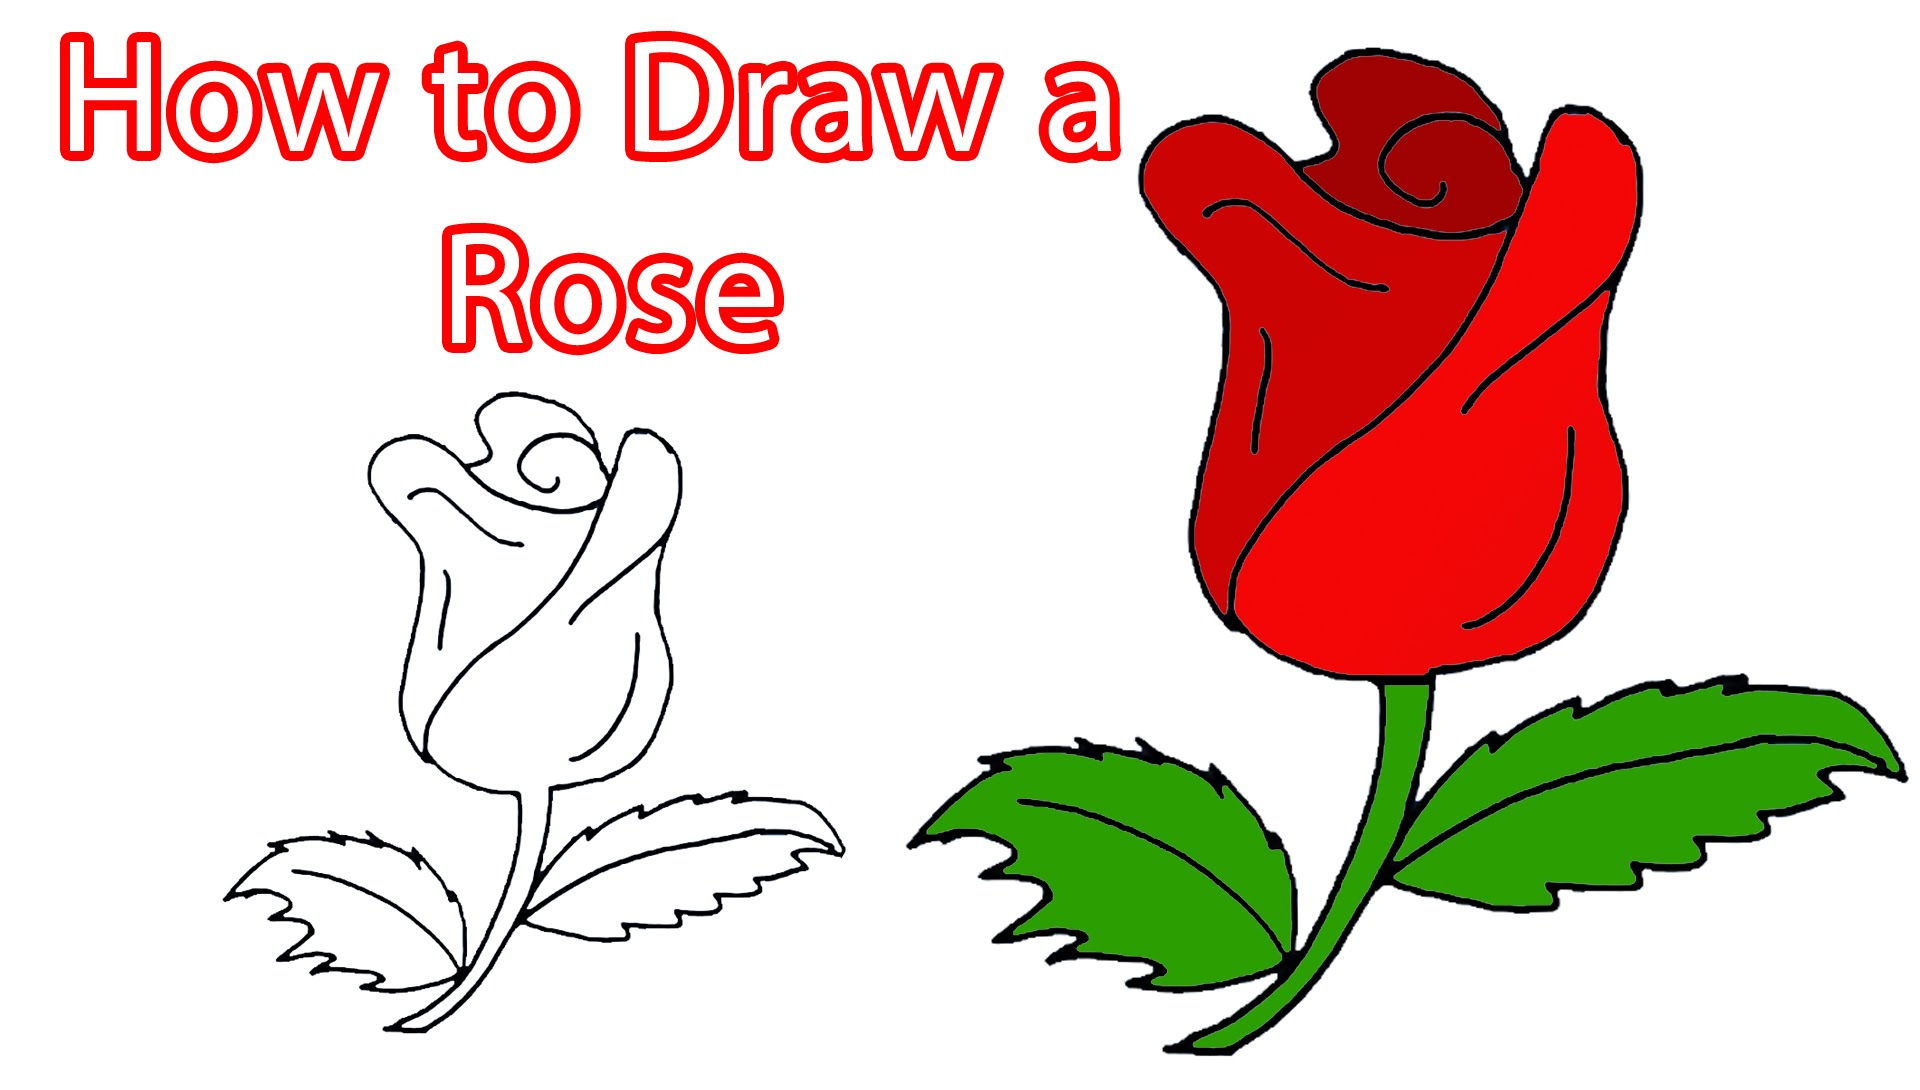 Rose Drawing For Kids at GetDrawings.com | Free for personal use ...